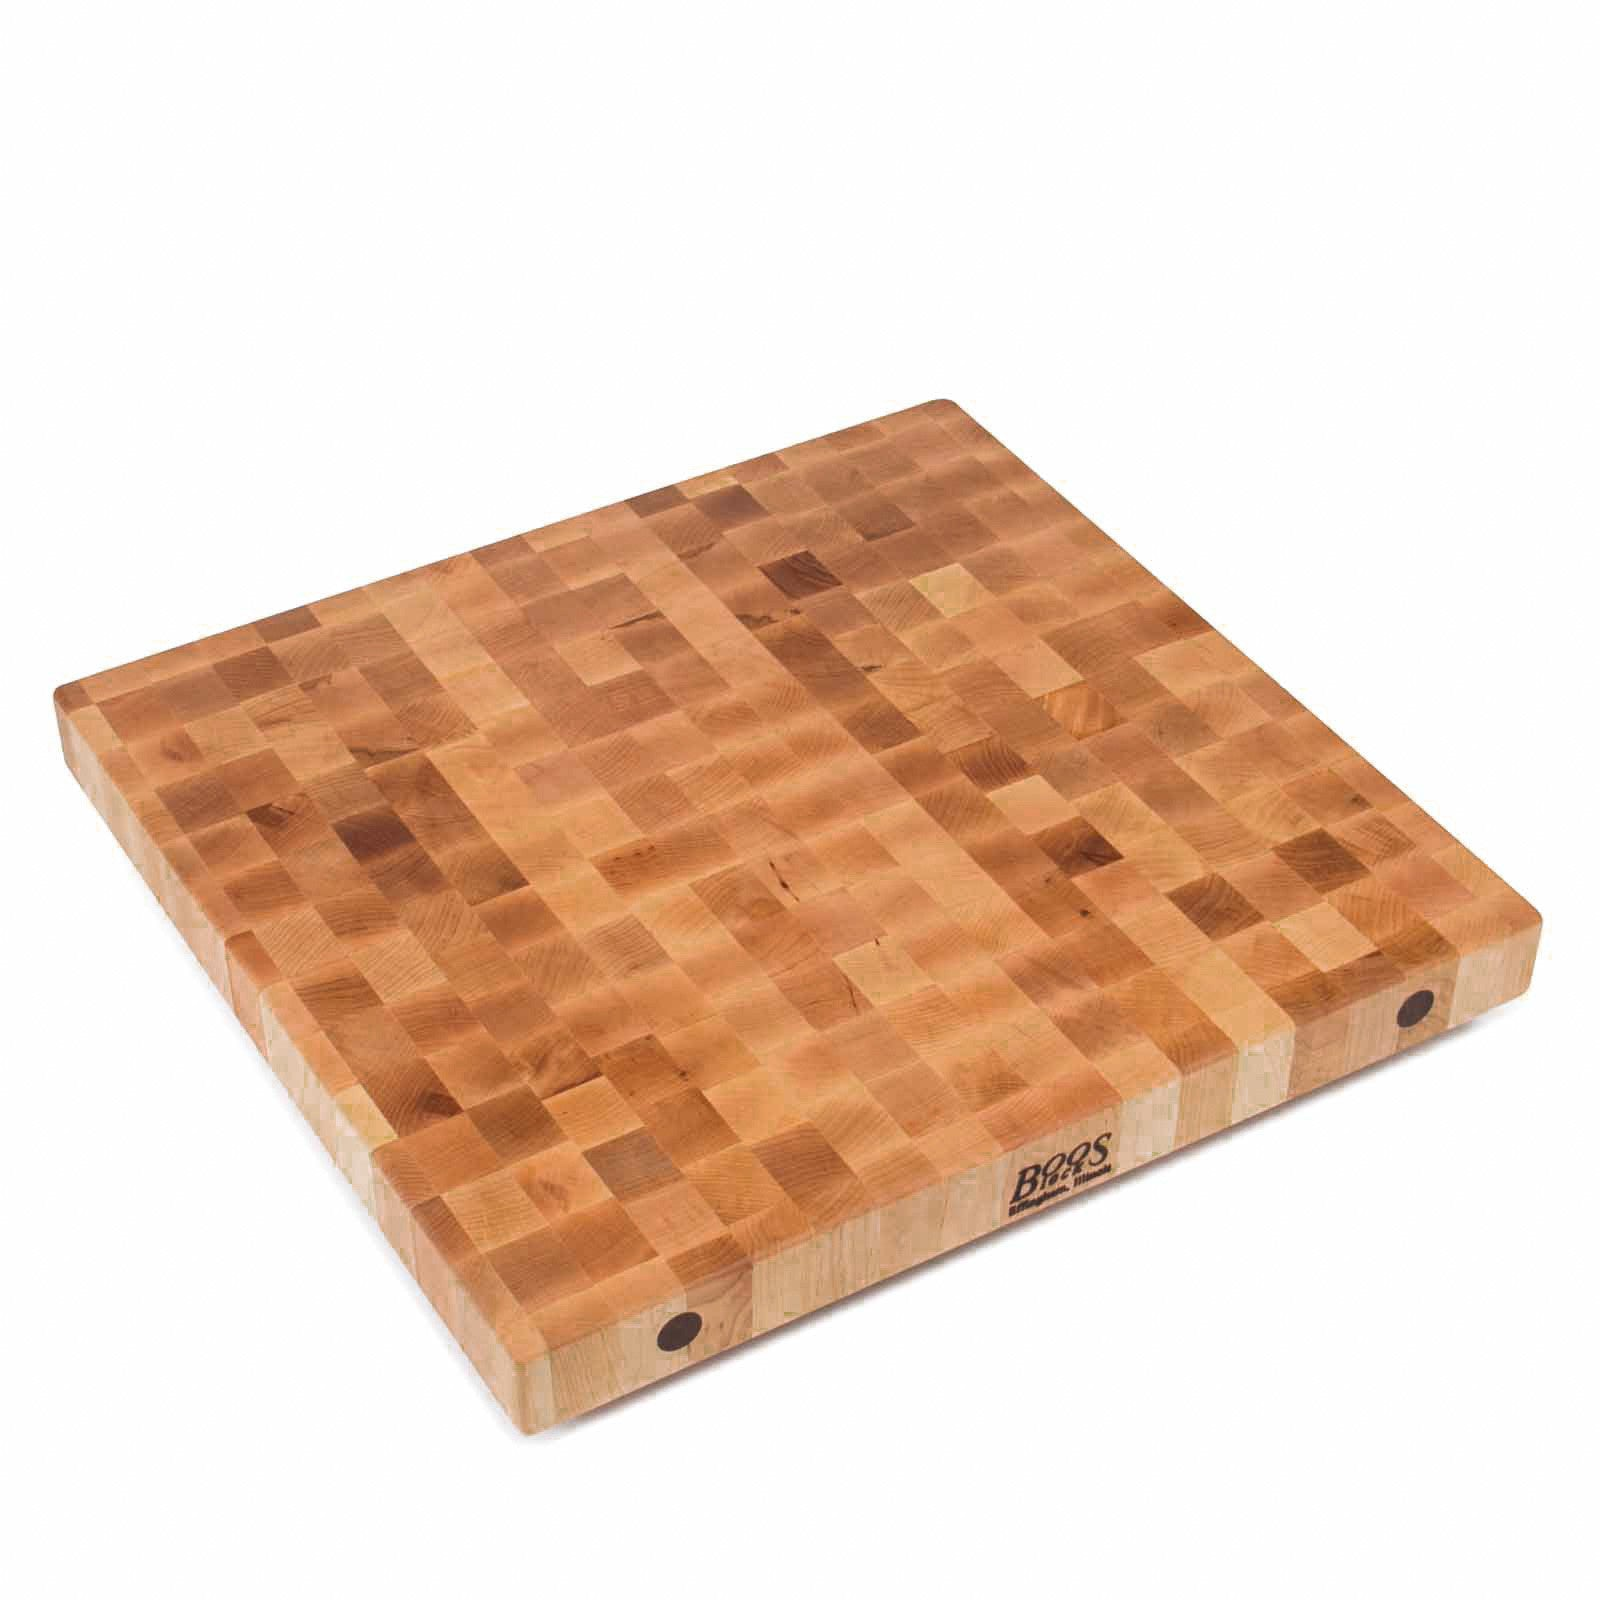 "John Boos 2 1/4"" Thick End Grain Maple Butcher Block Island Top - 27"" Wide"